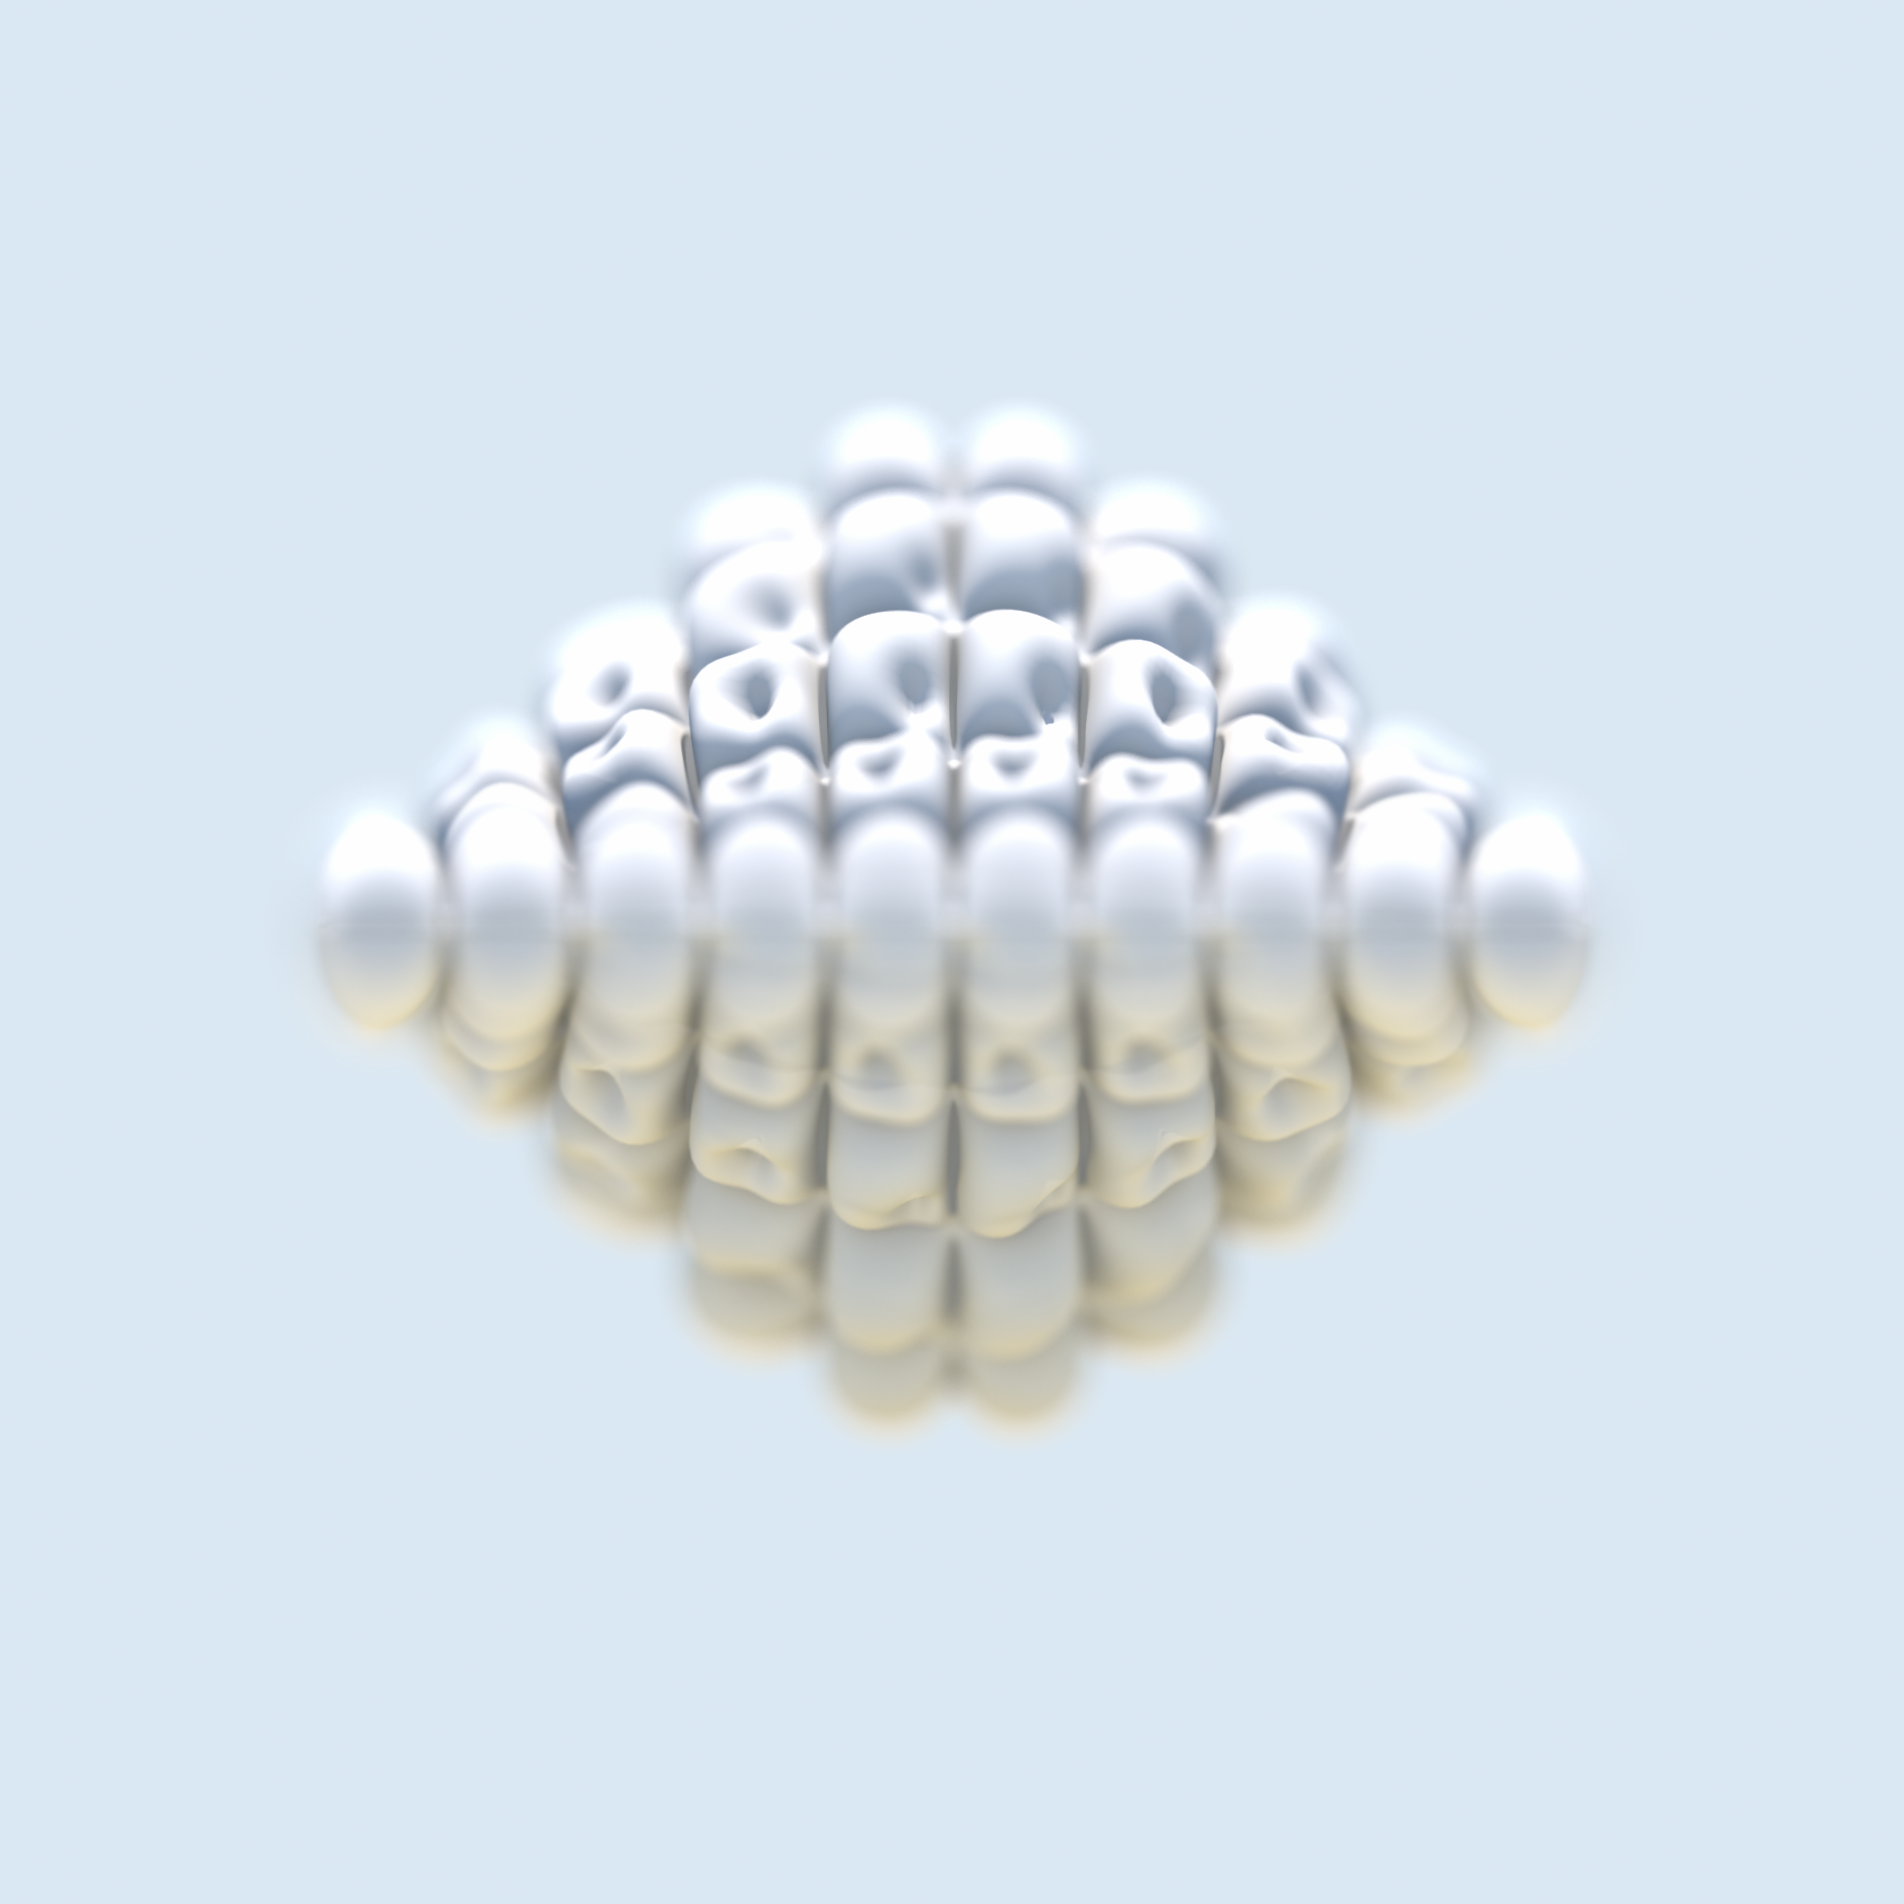 MESH-INFLATE_Render IMG02.png